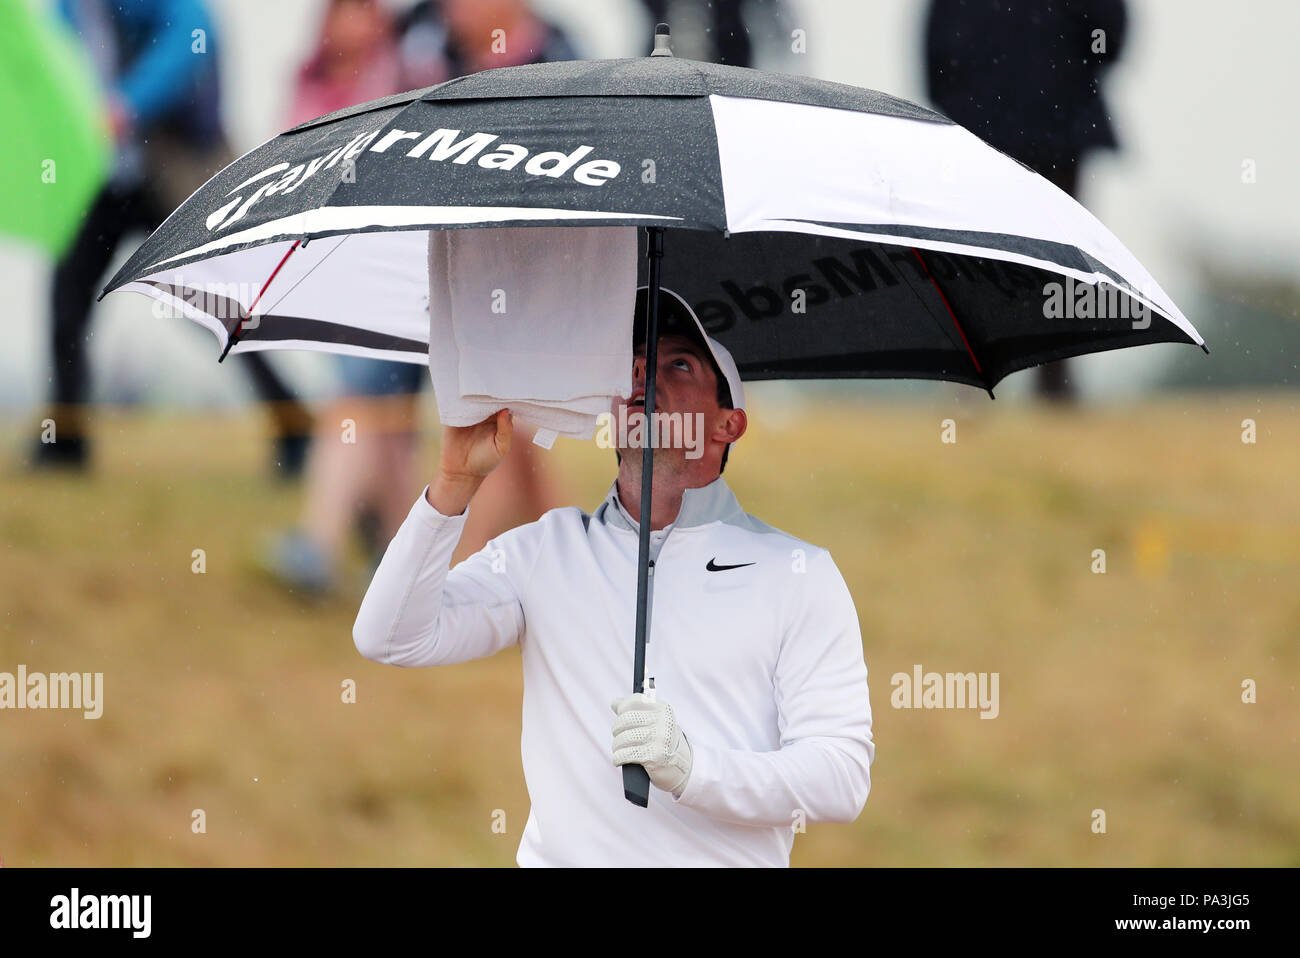 d4e486d60de3 Northern Ireland's Rory McIlroy adjusts his towel and umbrella ...